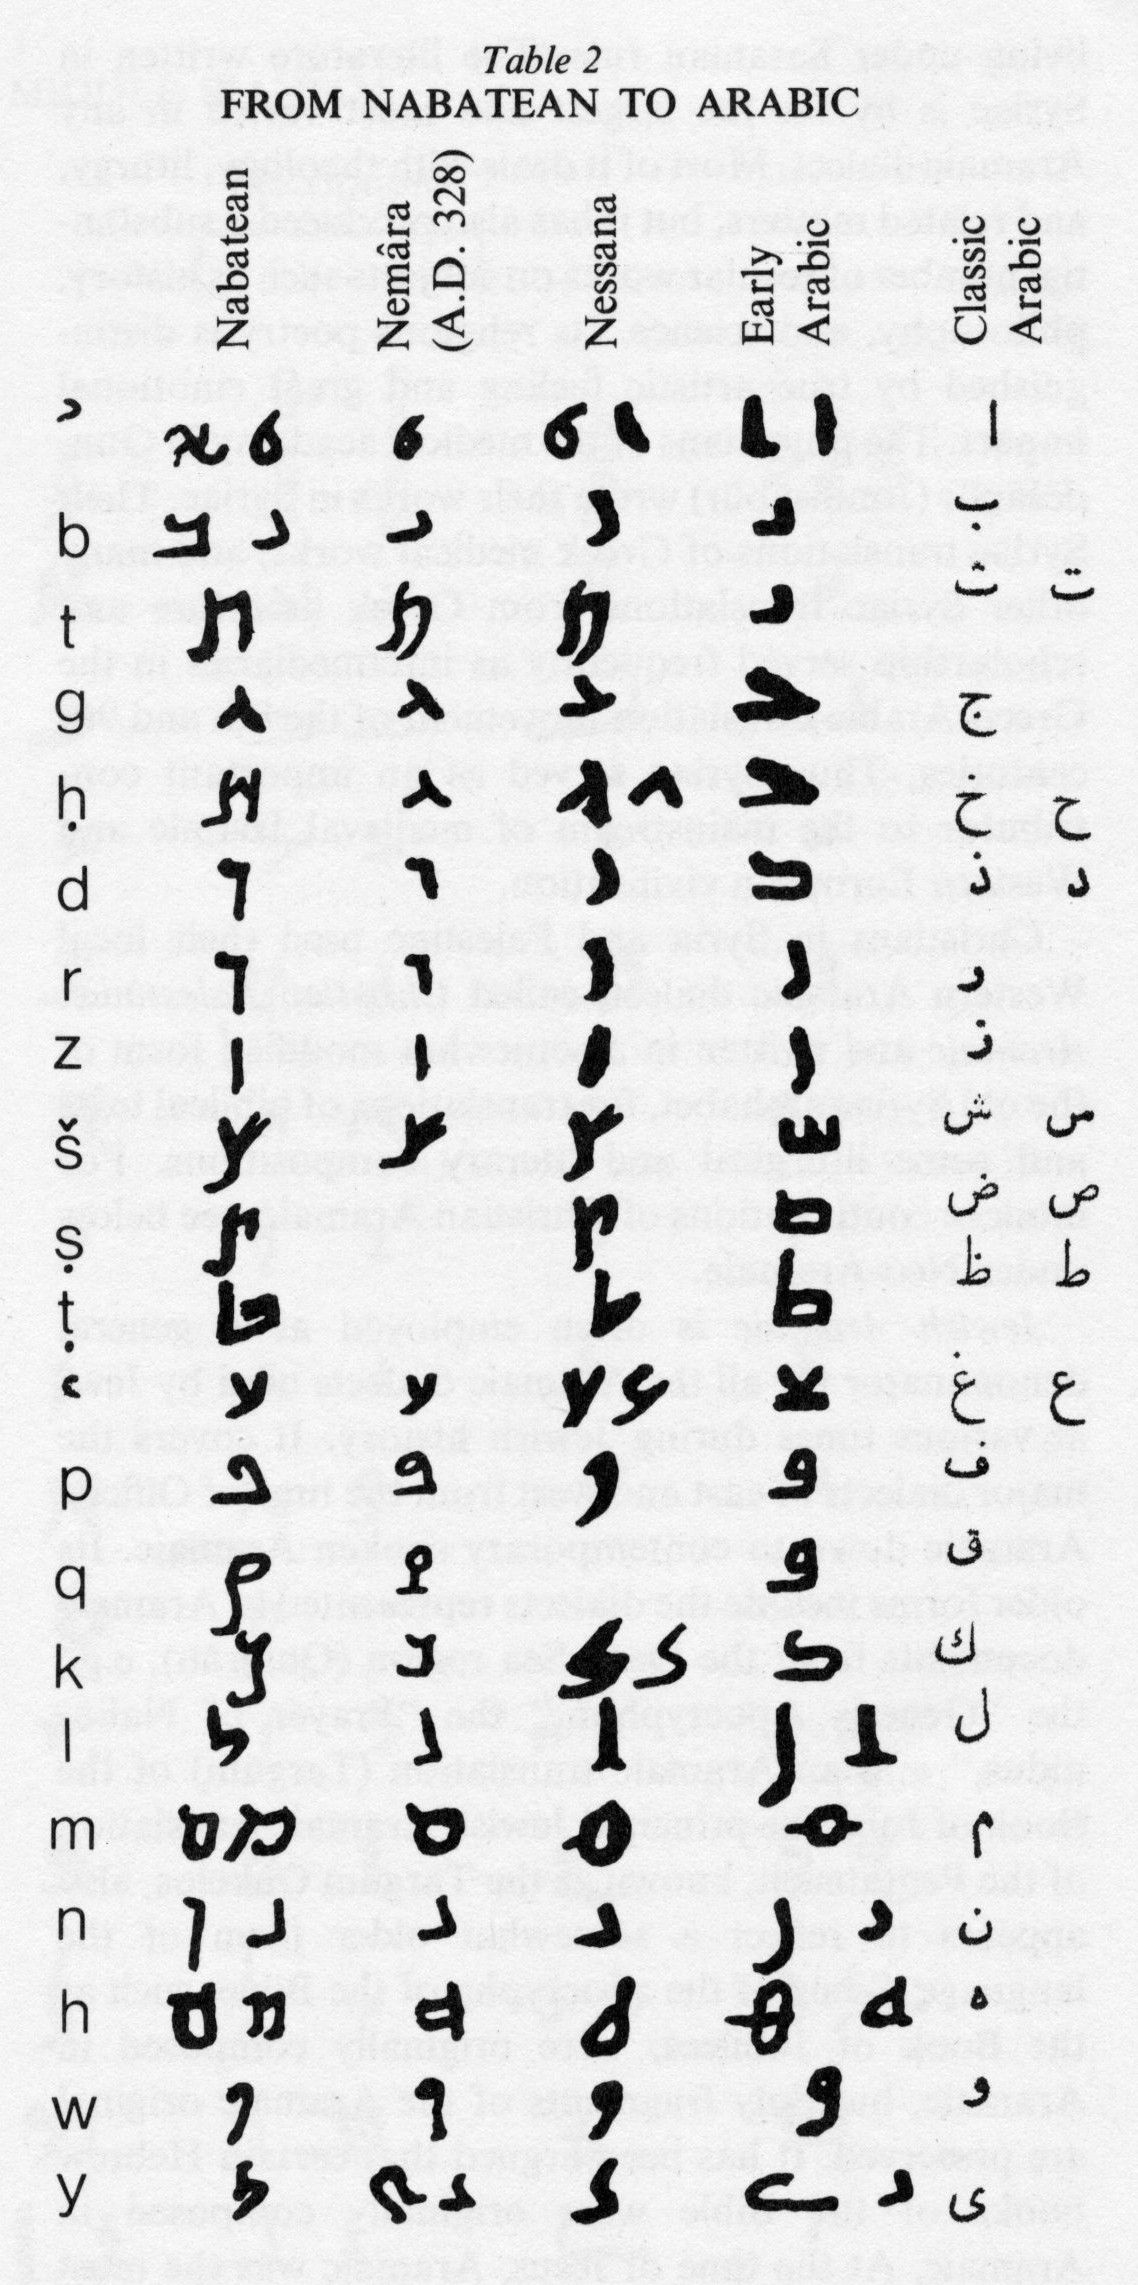 Ancient And Mystical Alphabets | alfabe | Ancient alphabets, Alphabet symbols, Aramaic alphabet